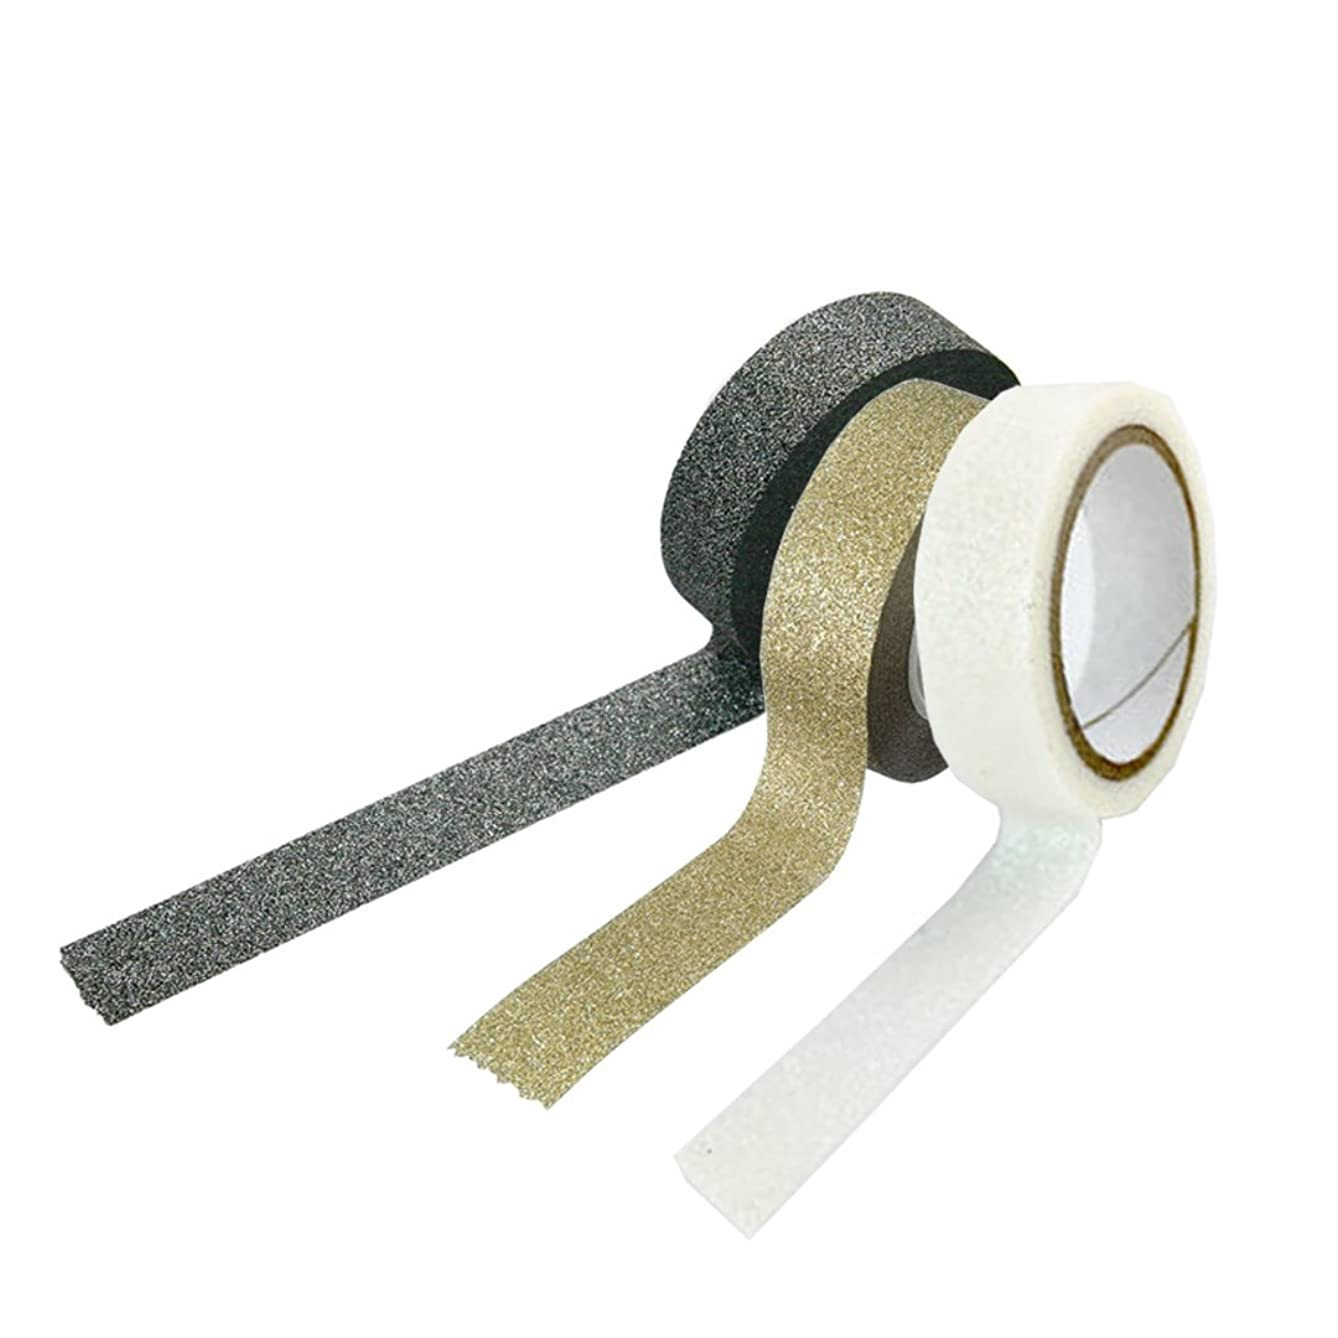 White + Black + Gold Glitter Washi Tape set of 3 pc